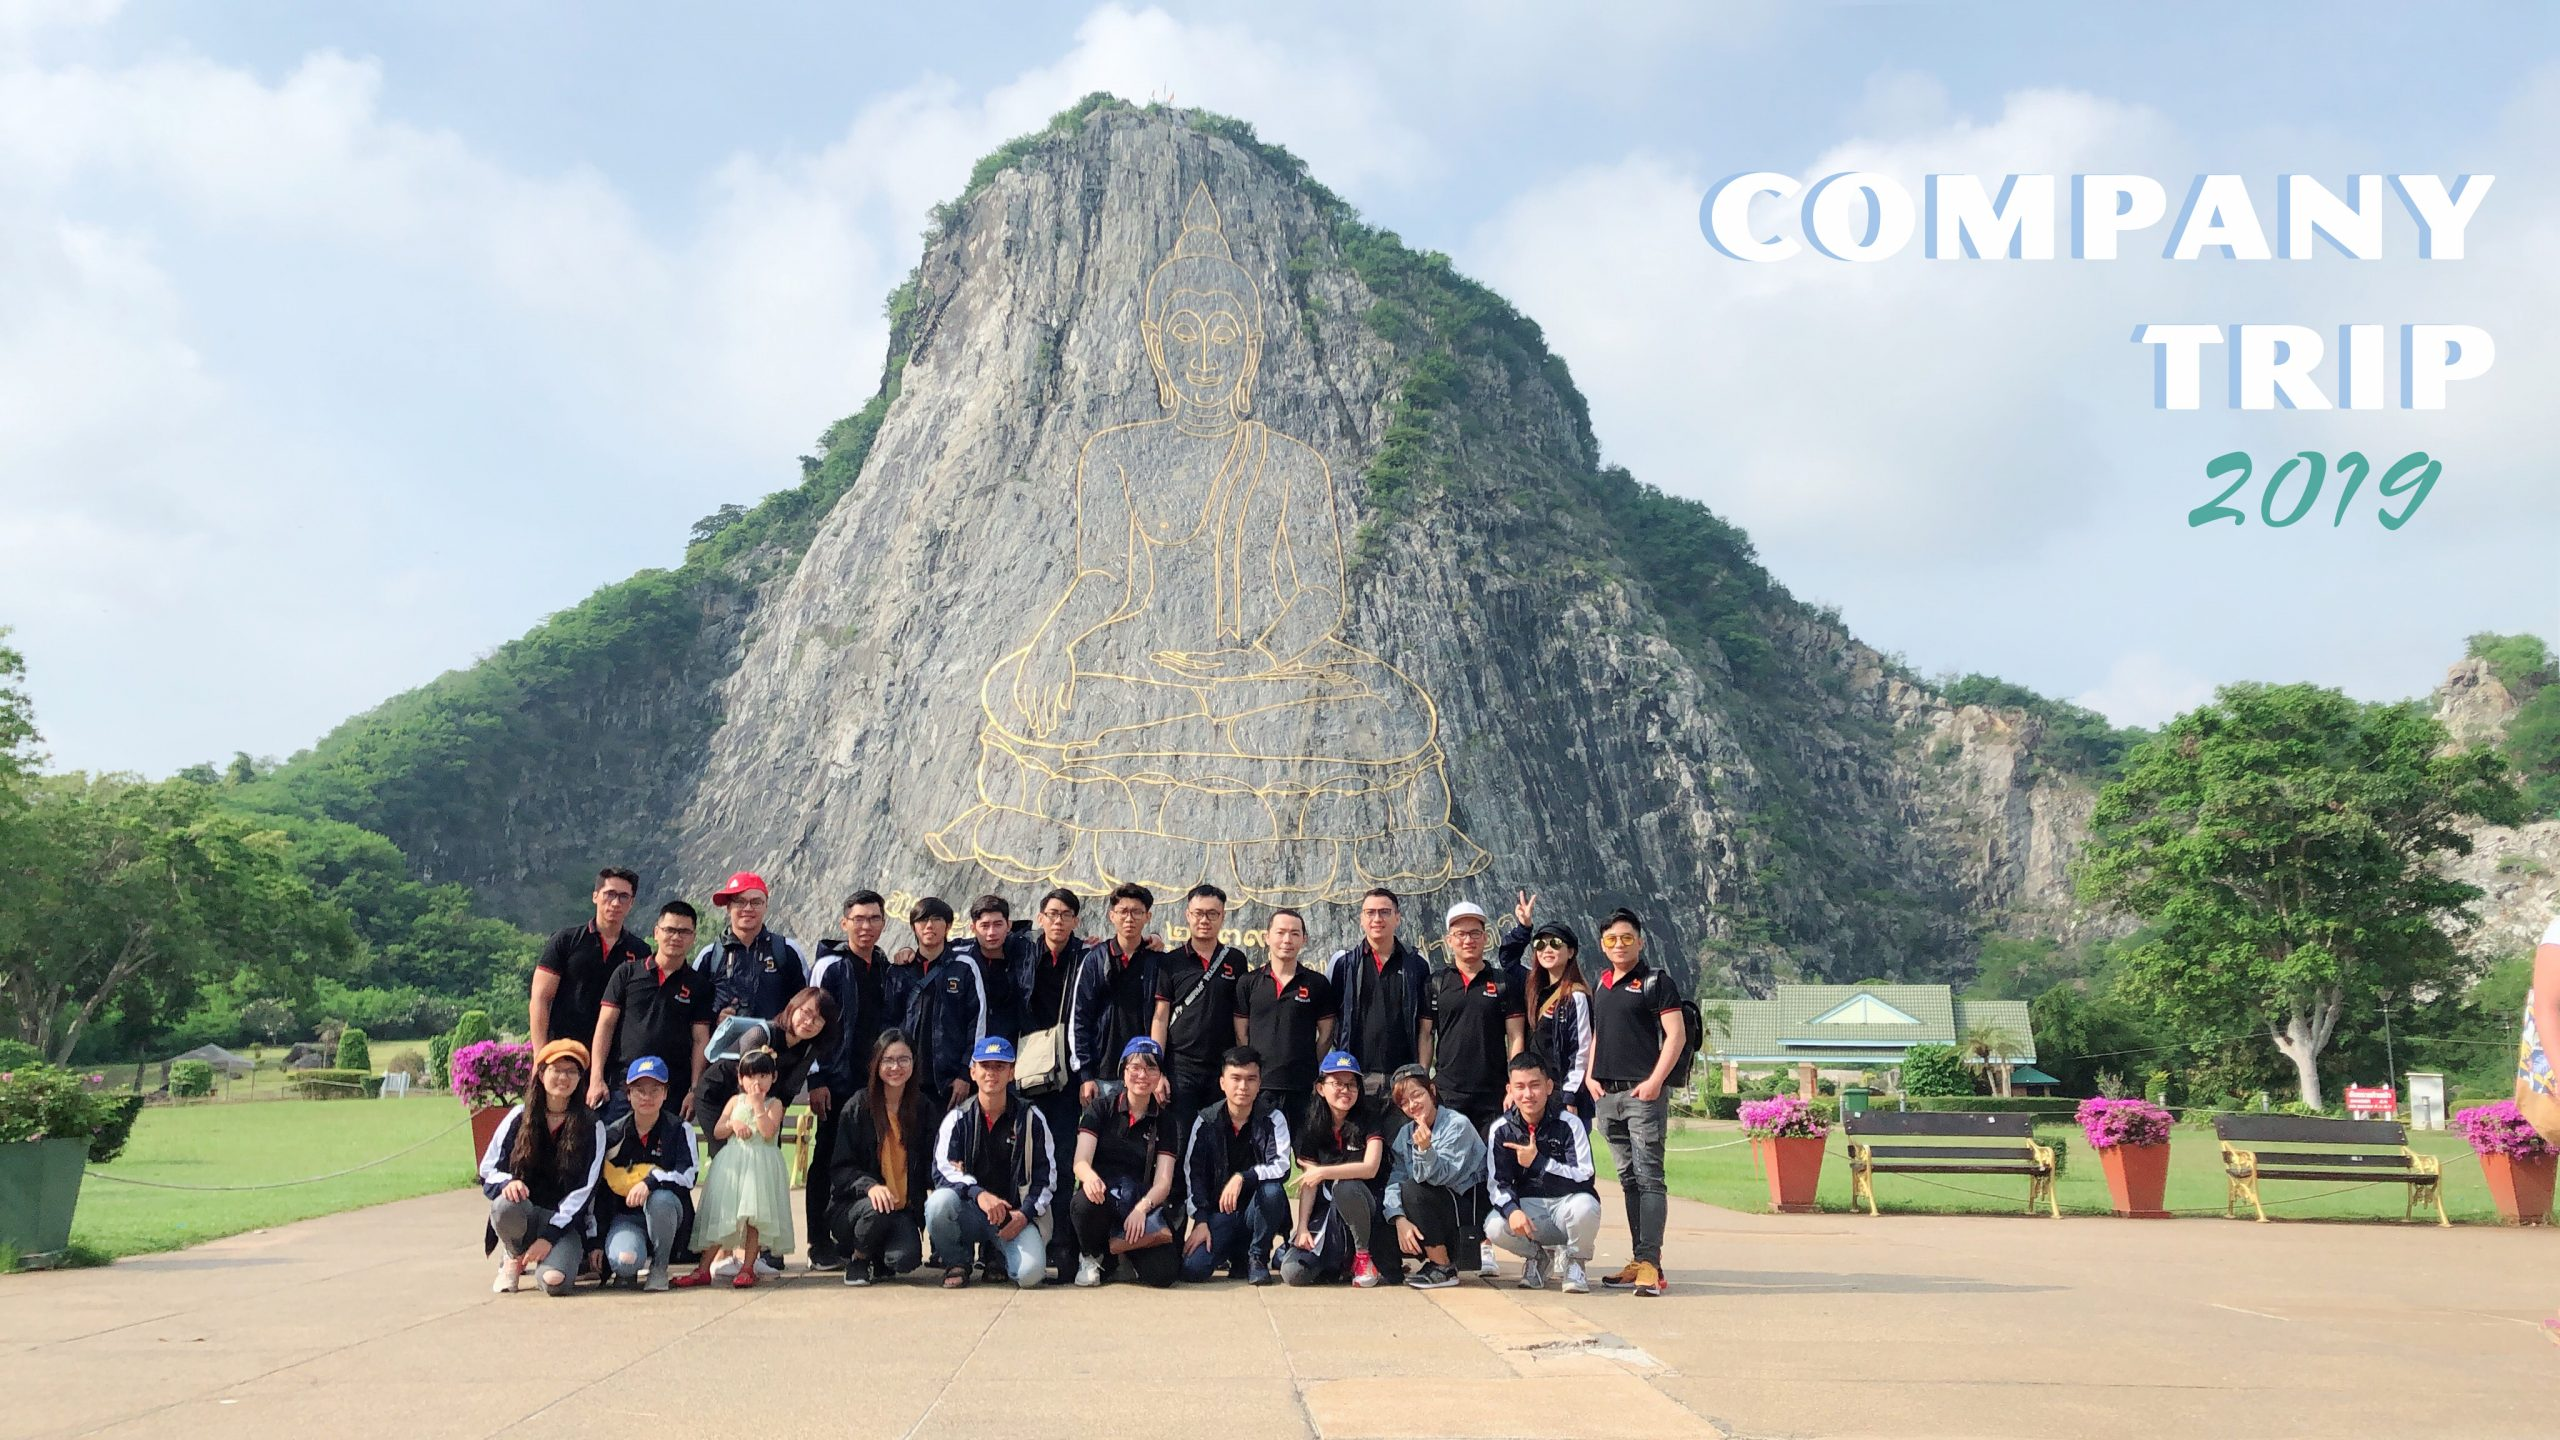 Company Trip 2019 – TRAVEL TO THE LAND OF GOLDEN TEMPLE